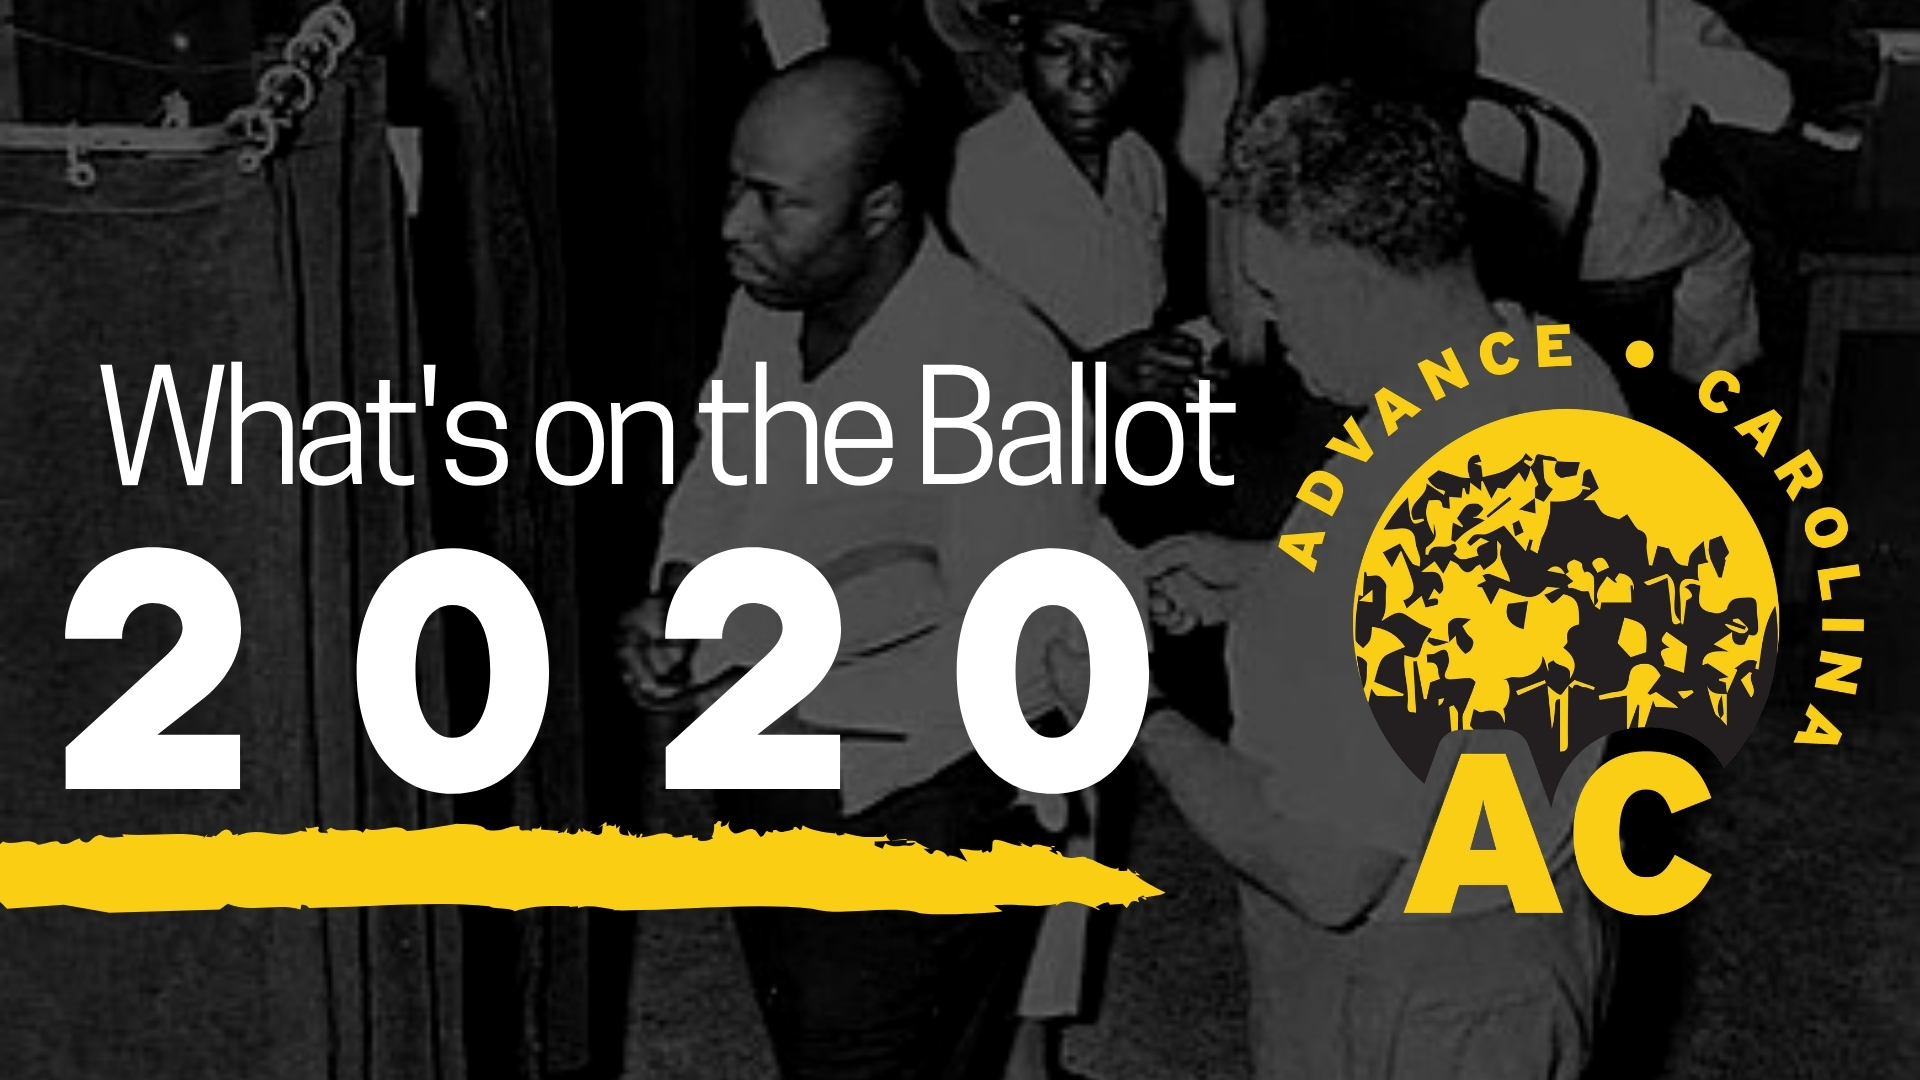 What's on the Ballot 2020